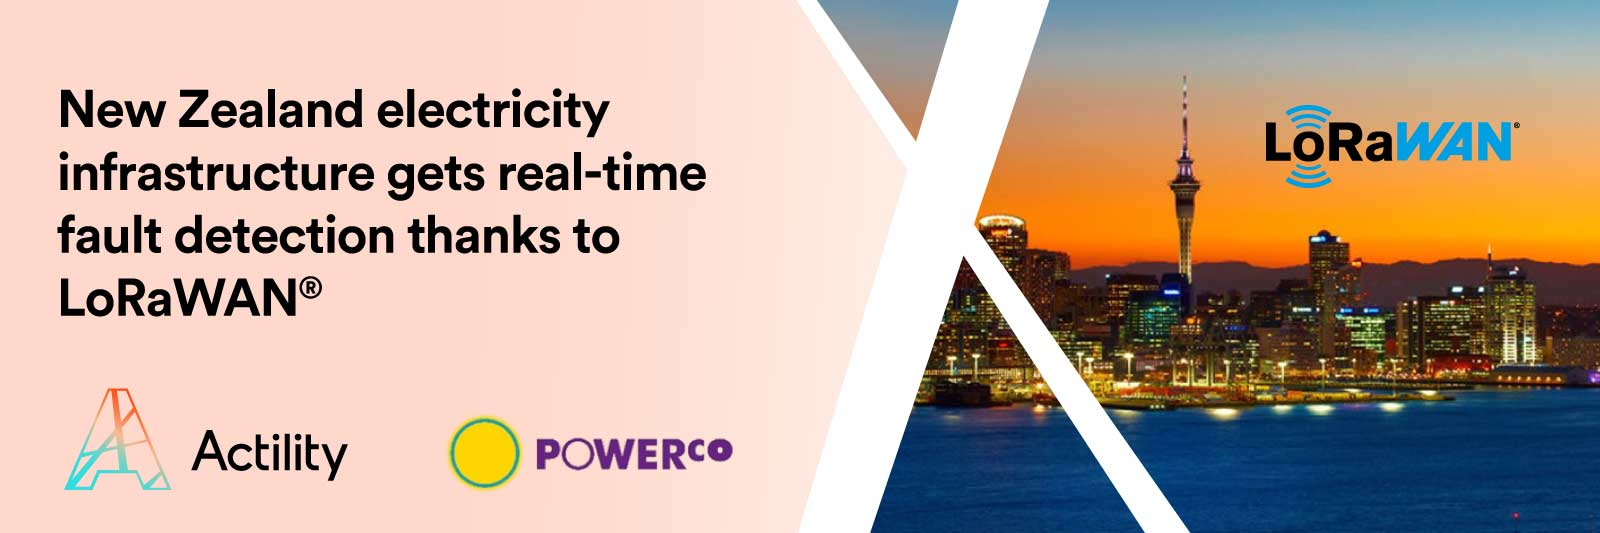 Header for Powerco press release